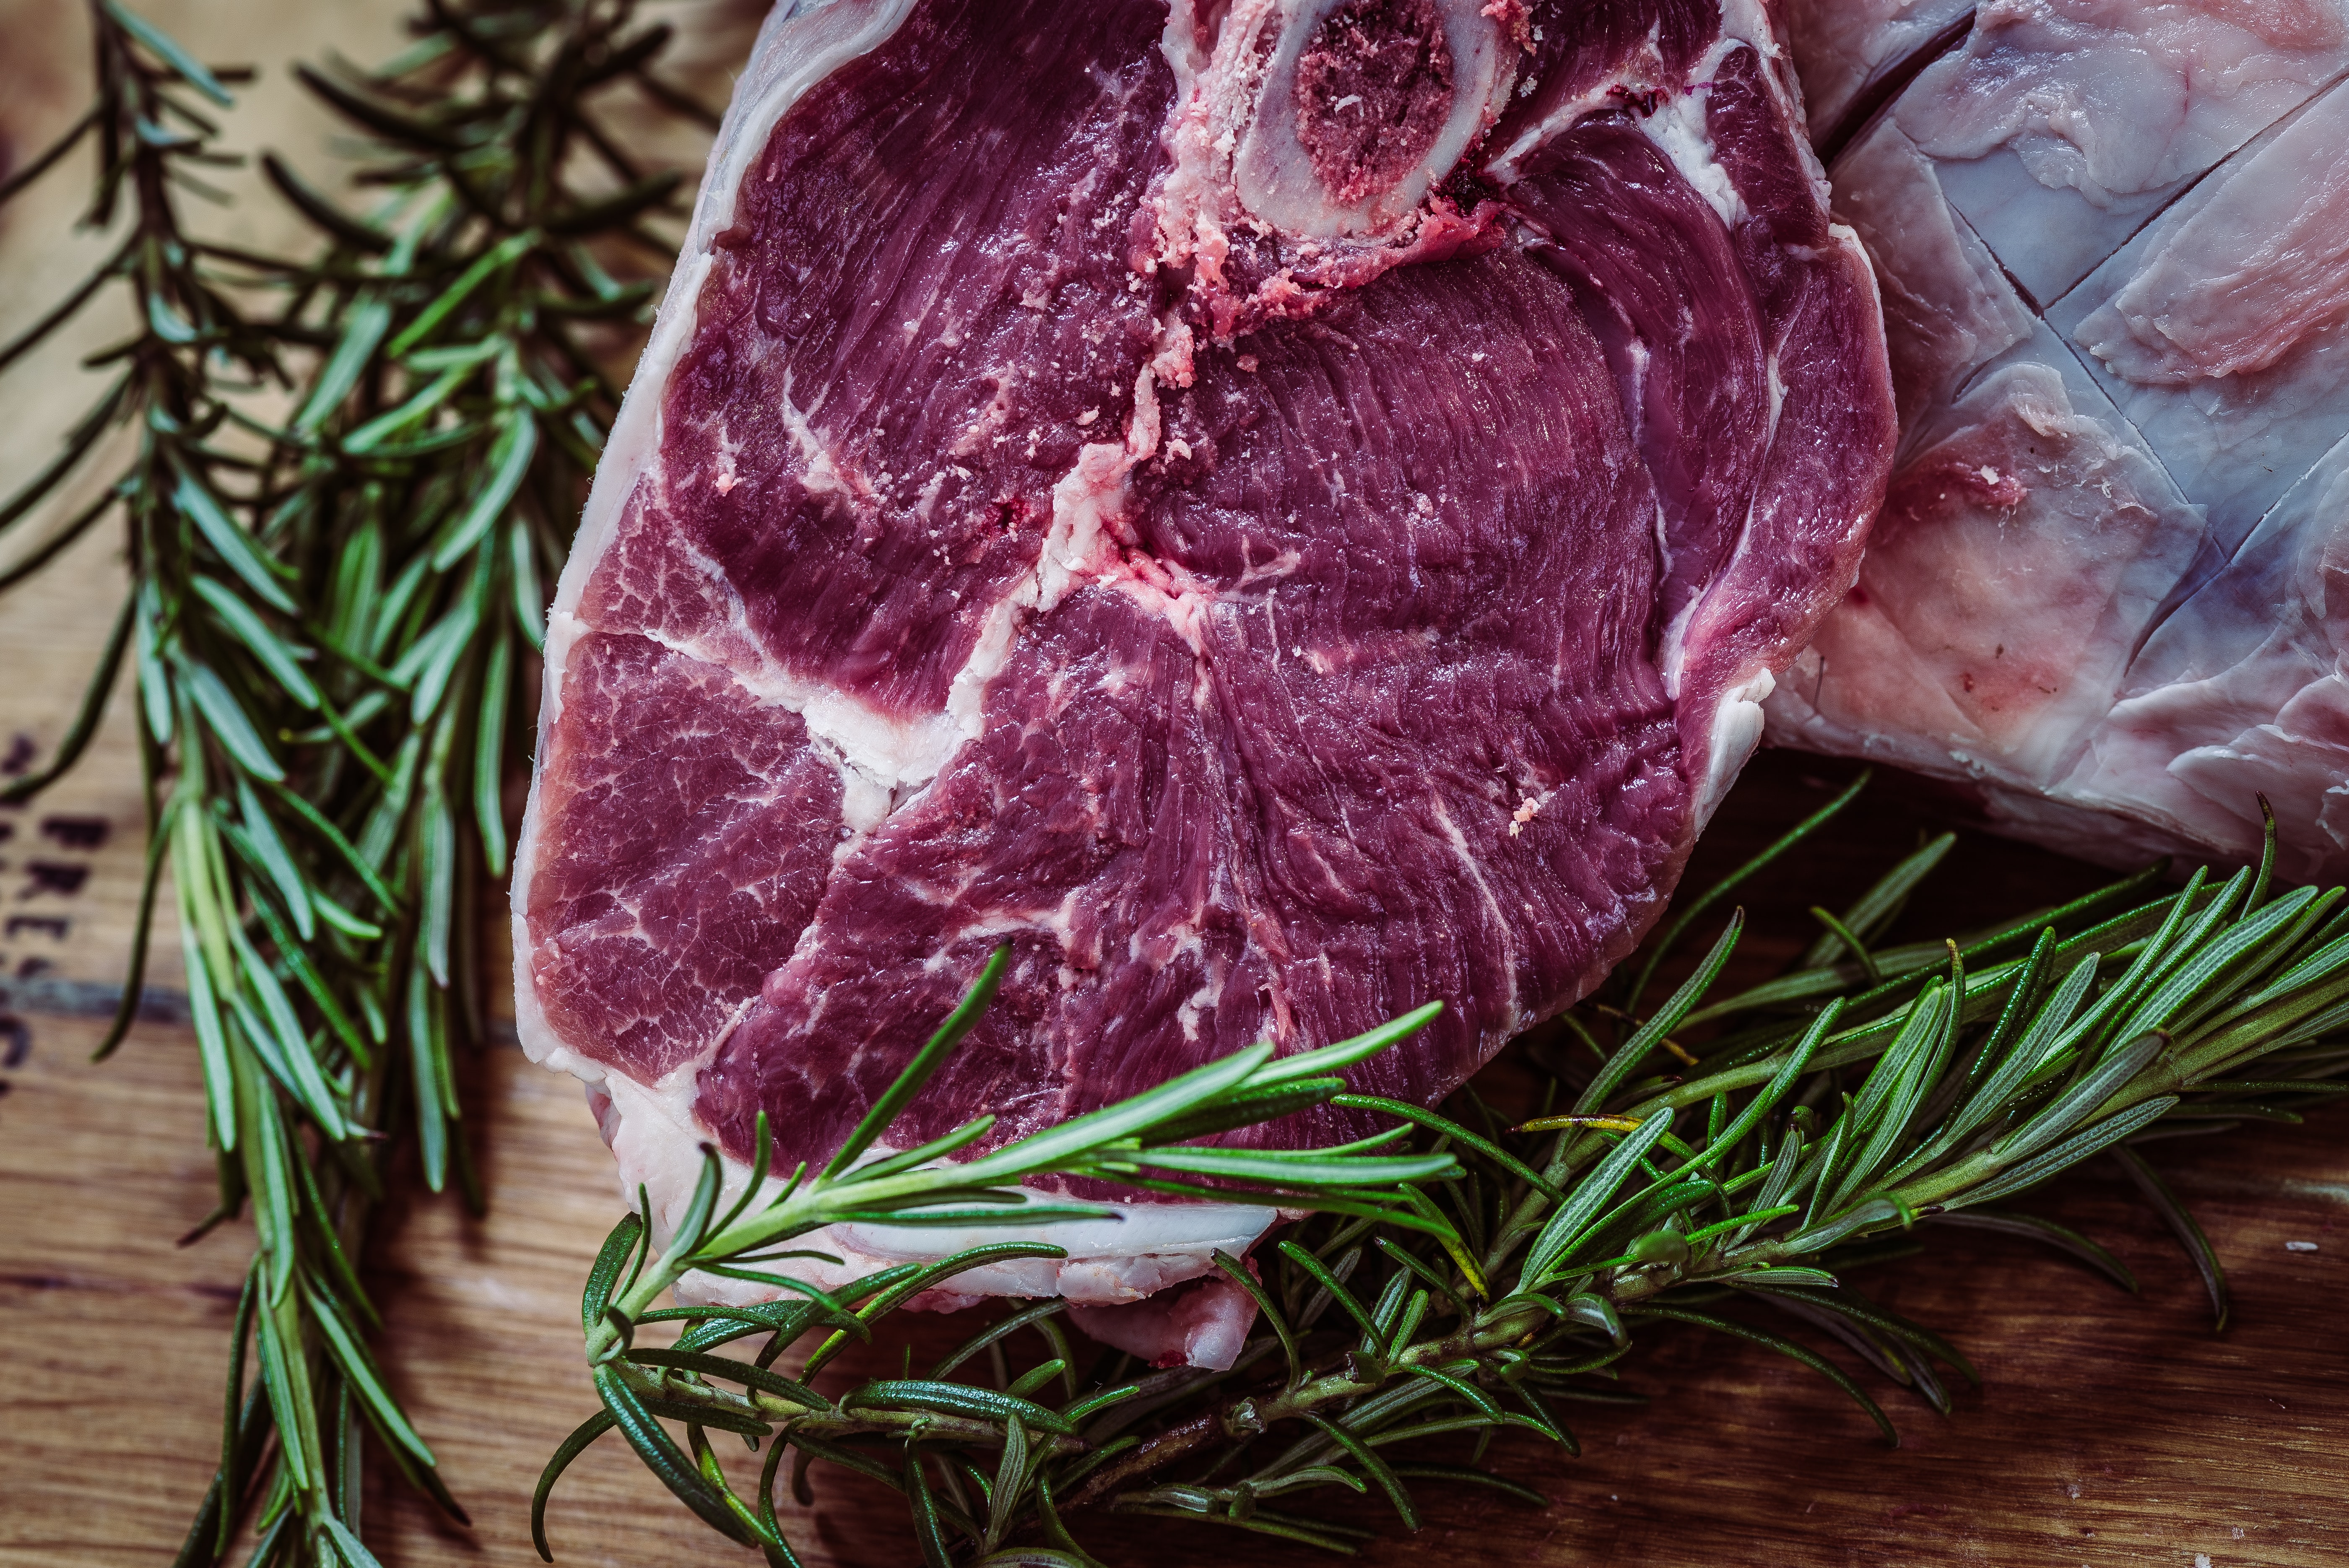 Raw steak with fresh rosemary and herbs on a rustic table